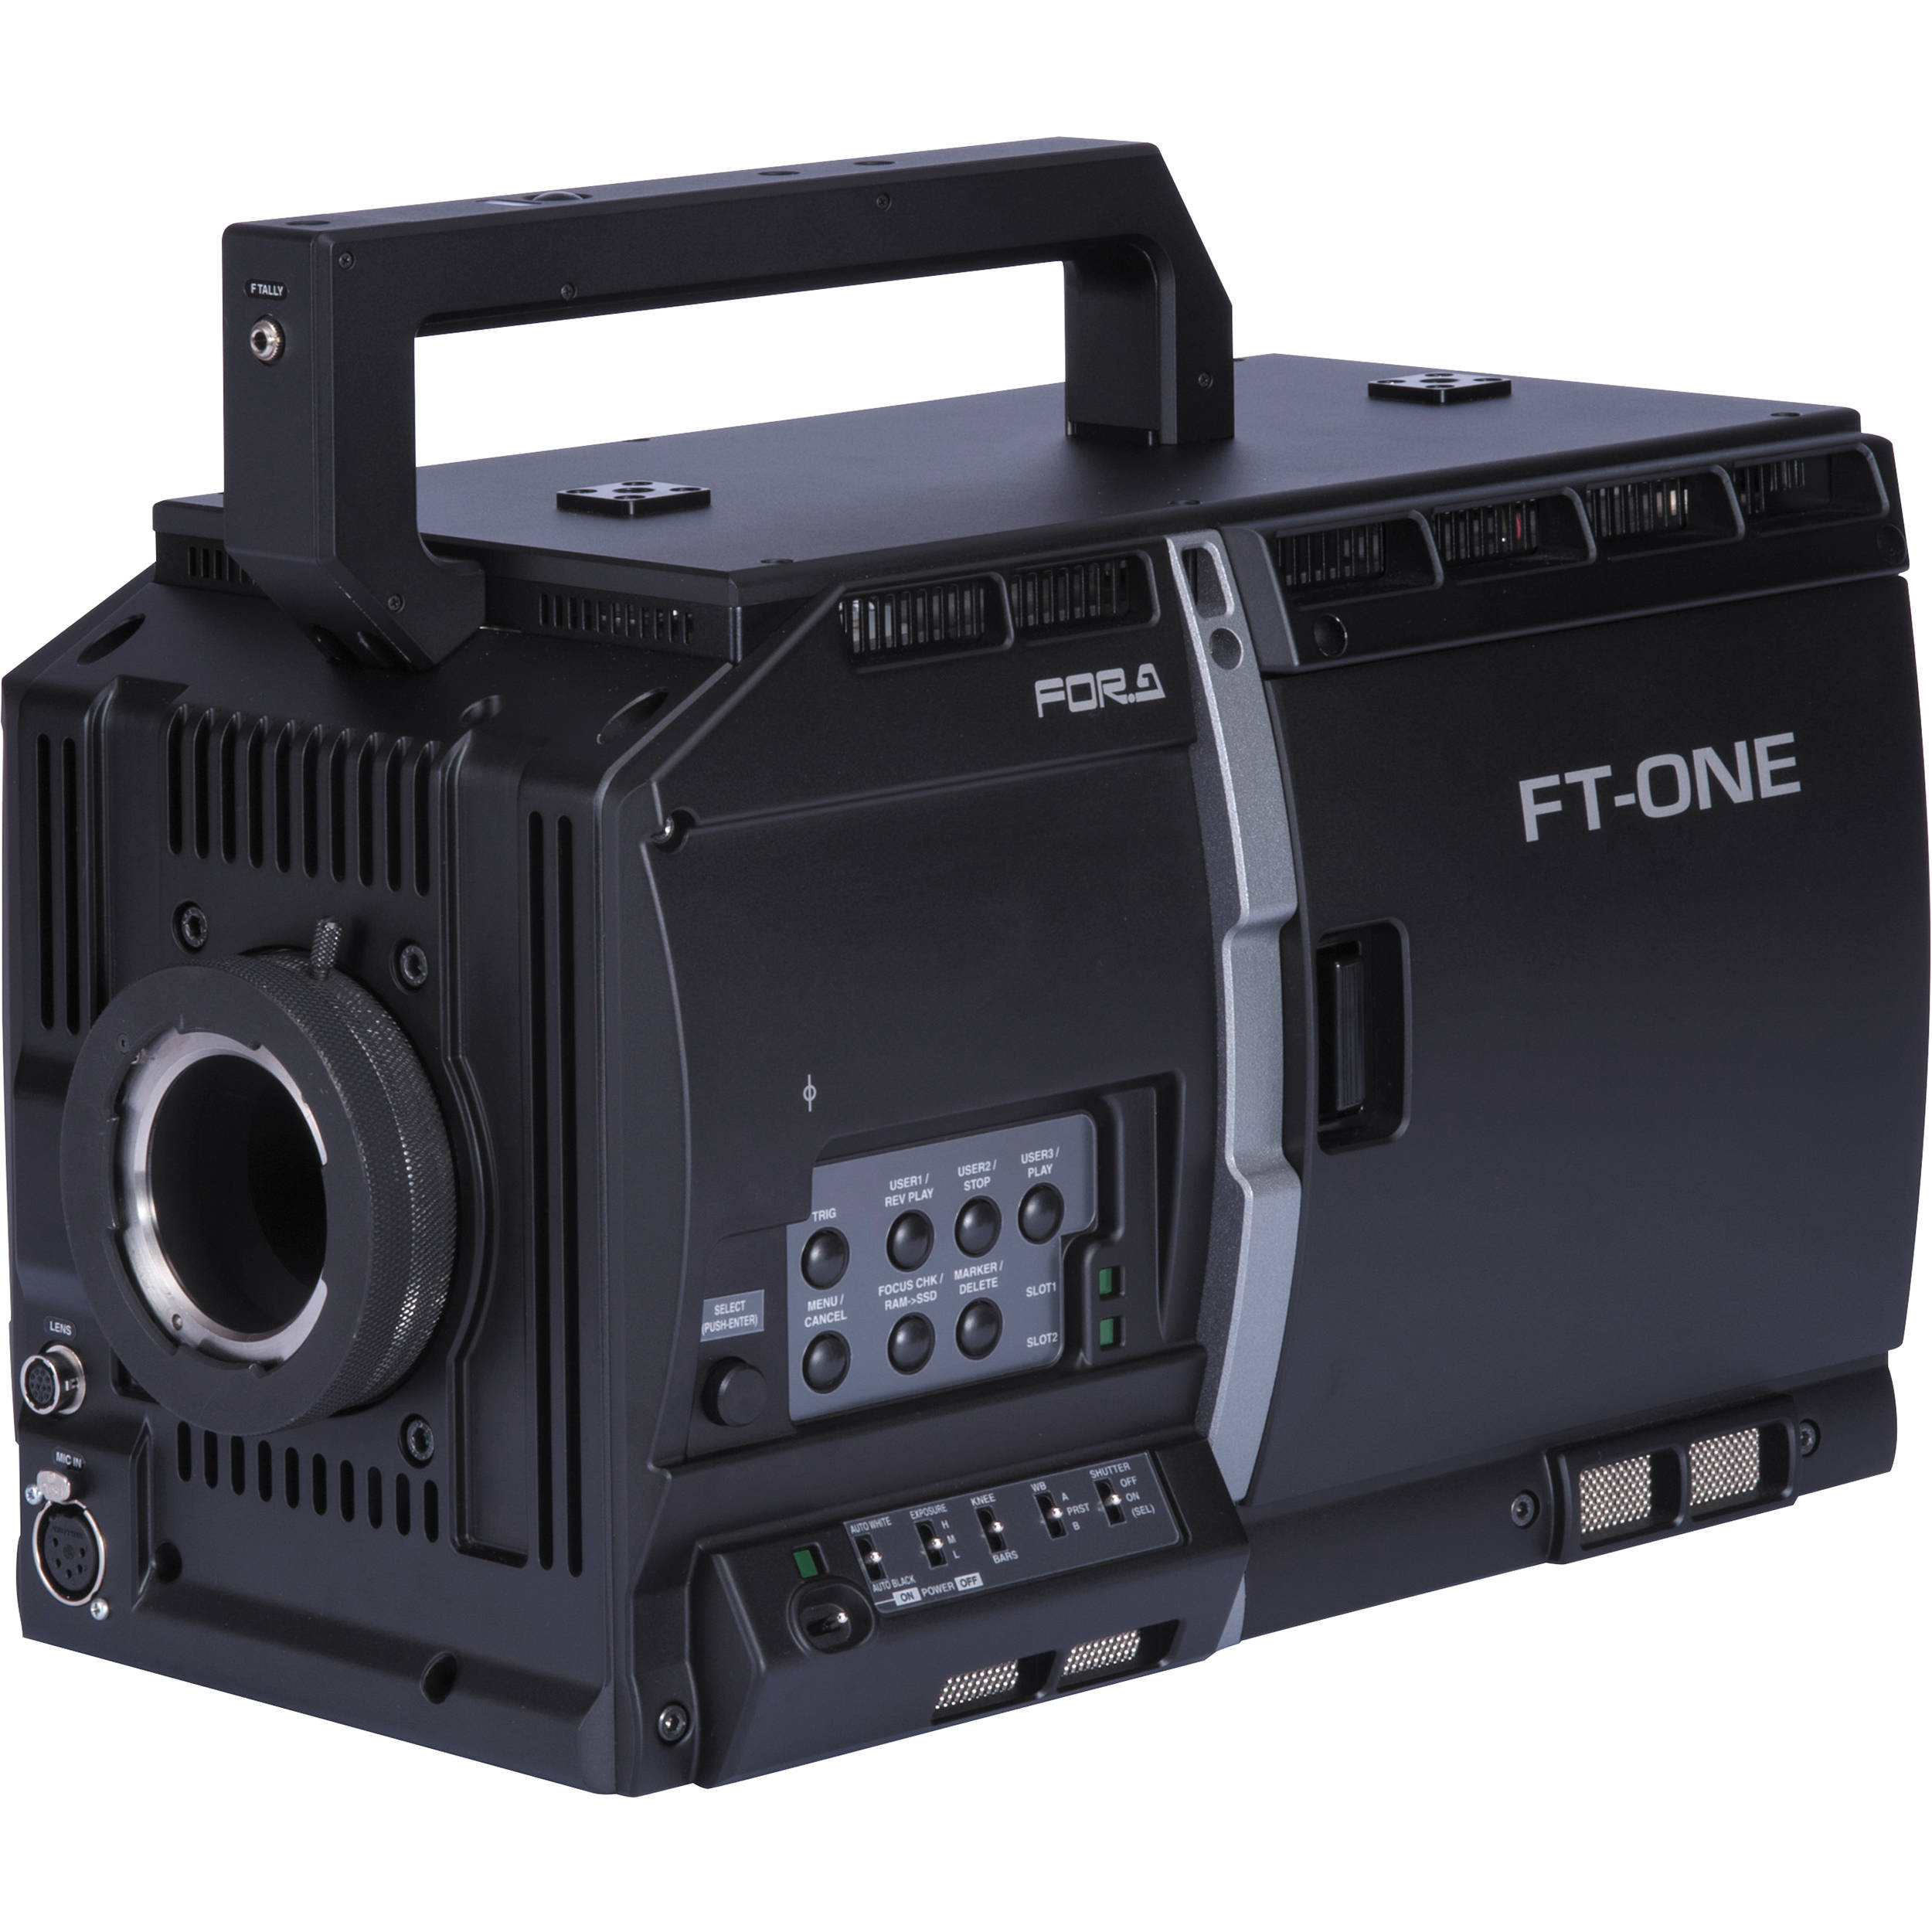 For.A FT-ONE-OPT Full 4K Variable Frame Rate Camera FT-ONE-OPT